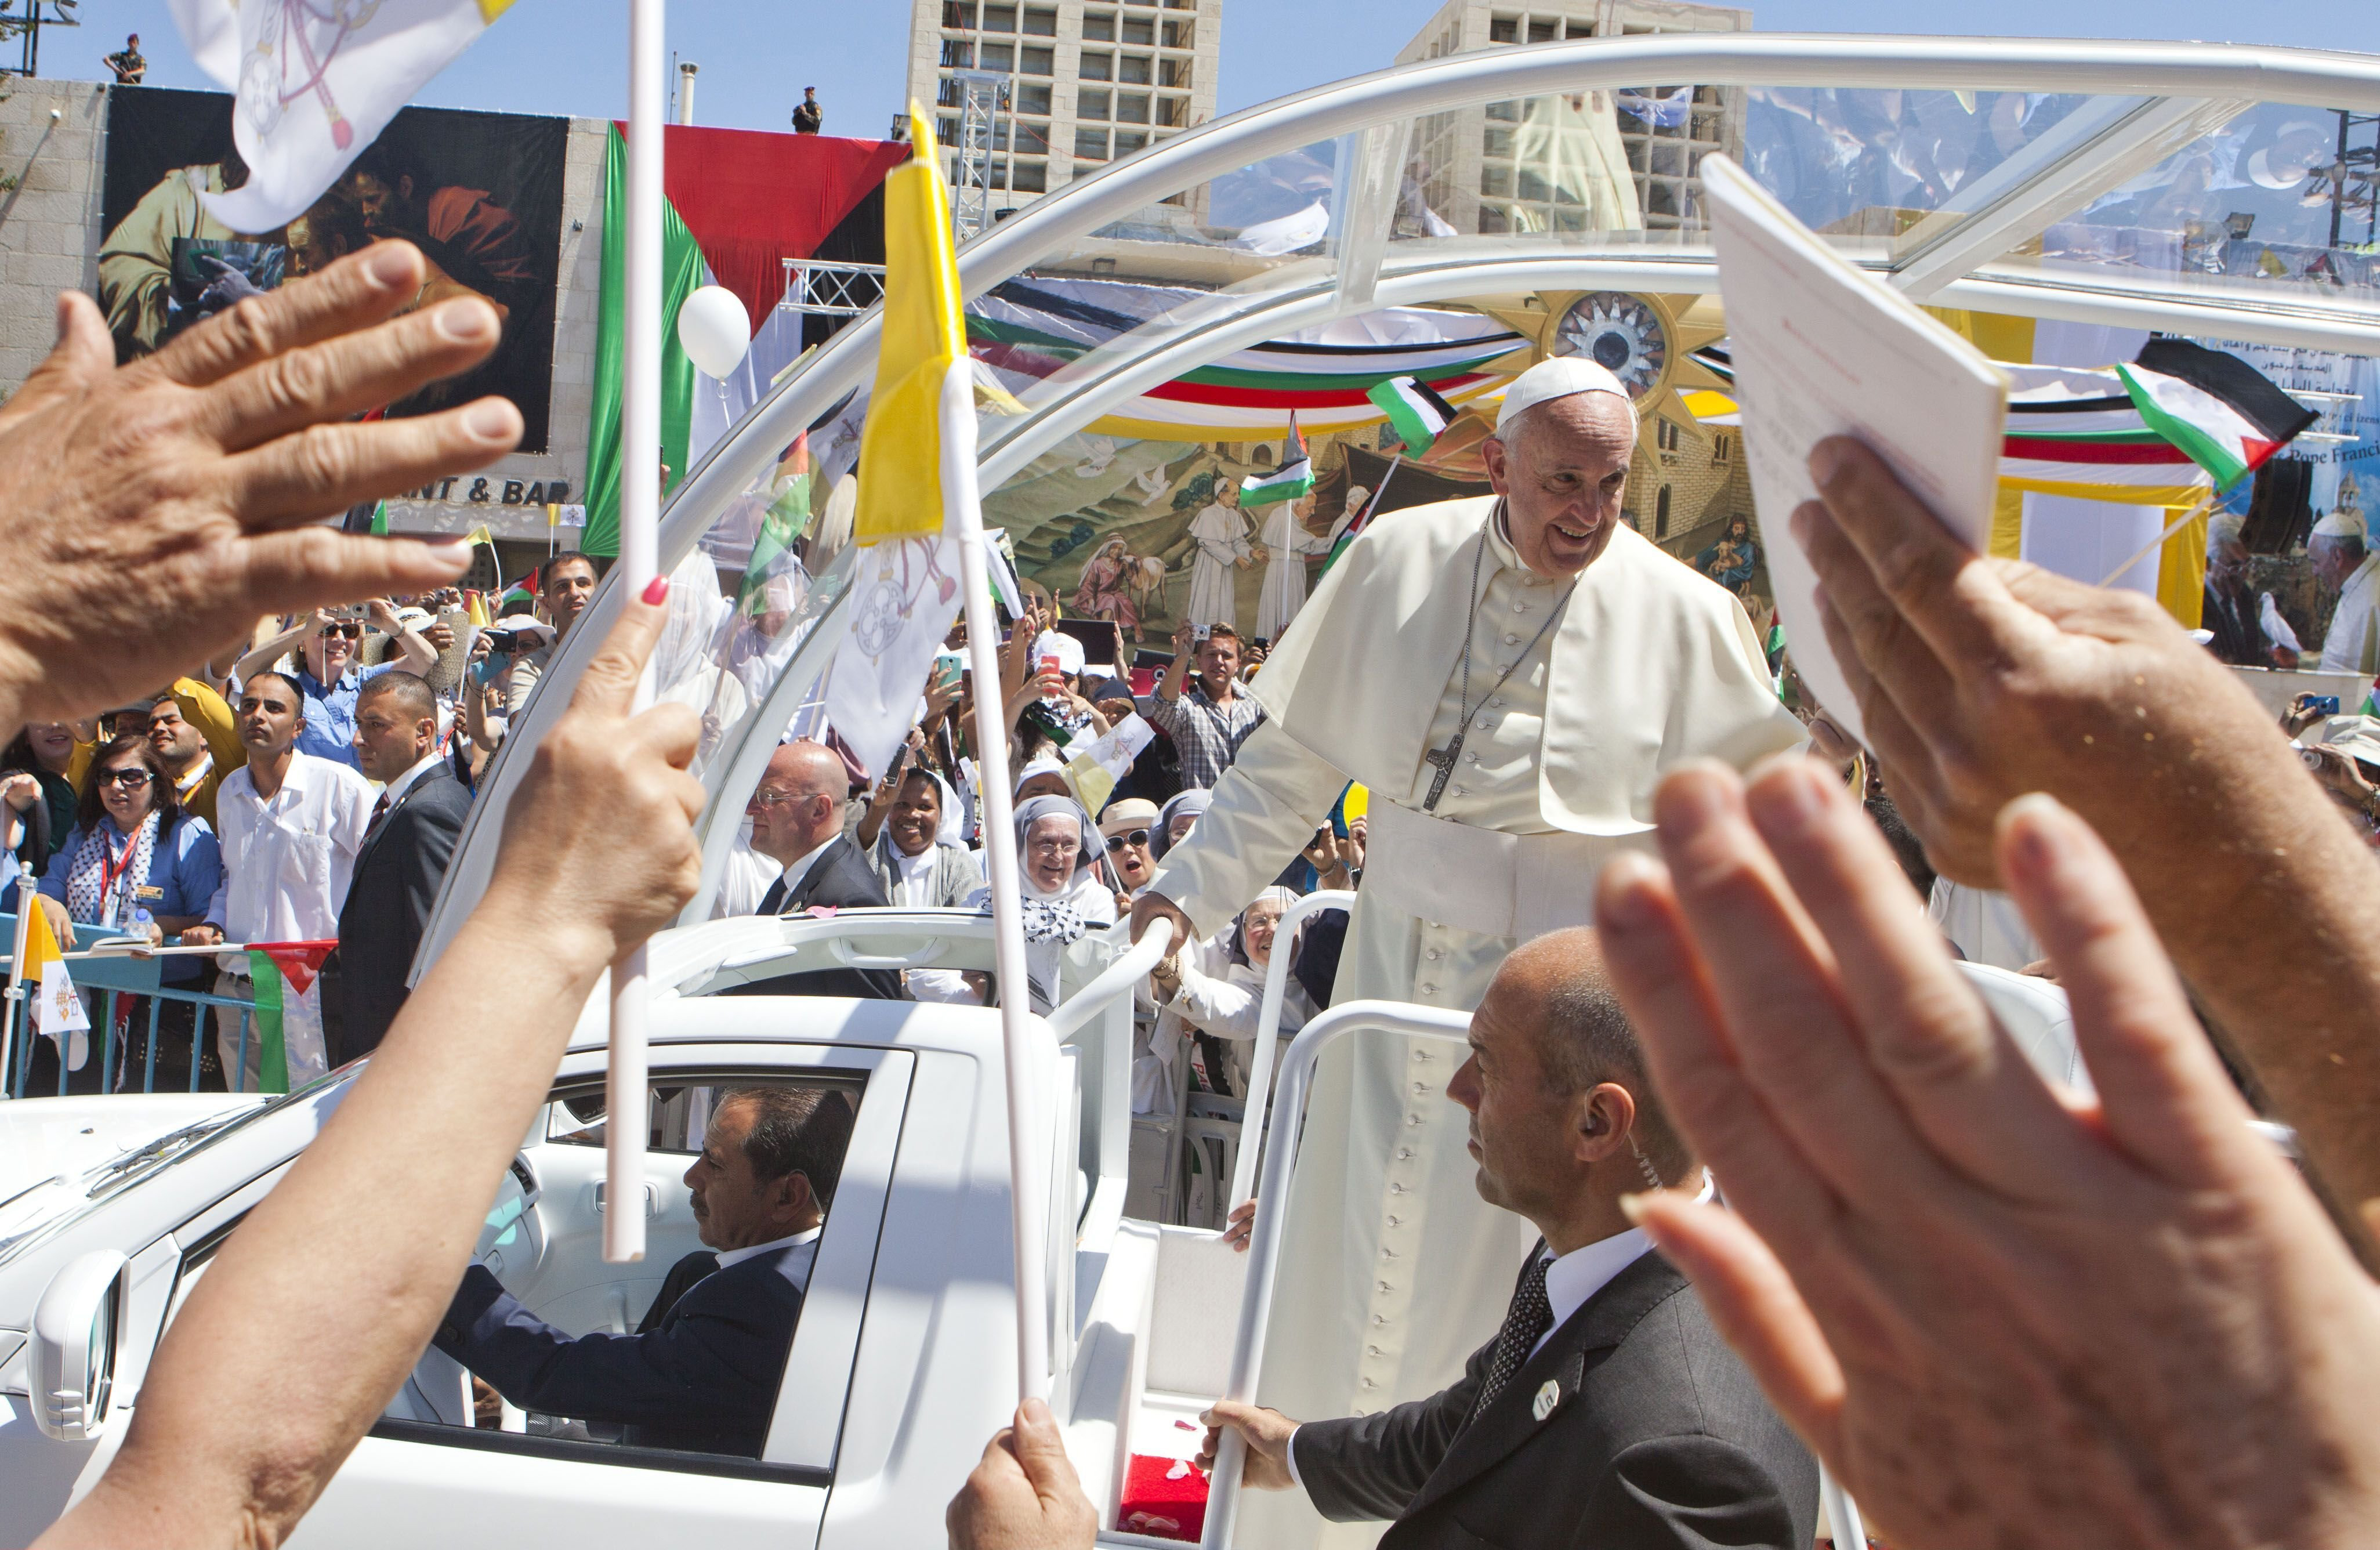 Pope Francis arrived in Bethlehem's Manger Square in an open vehicle where over 10,000 Christian pilgrims were packed on May 25, 2014 in the West Bank.